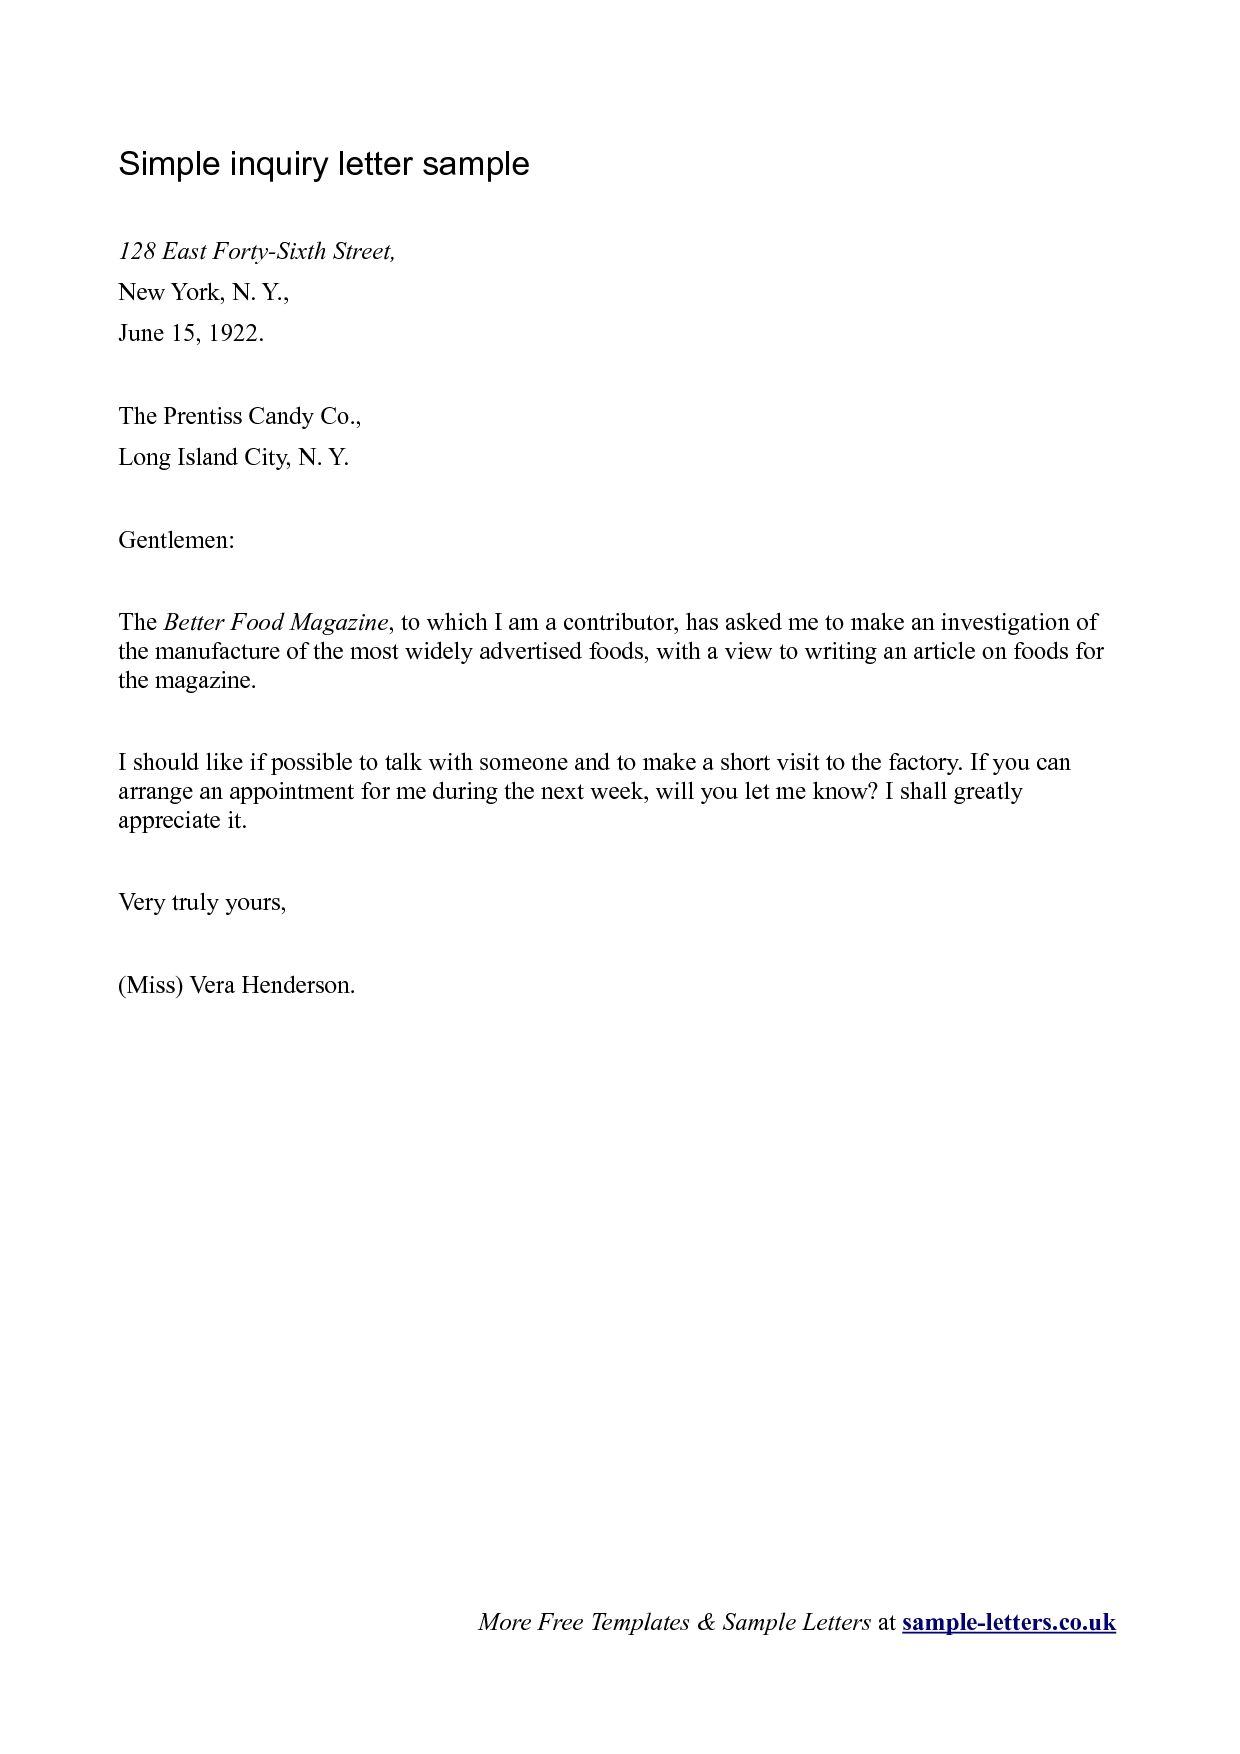 business letter of inquiry sample the letter sample  reading and writing  Formal business